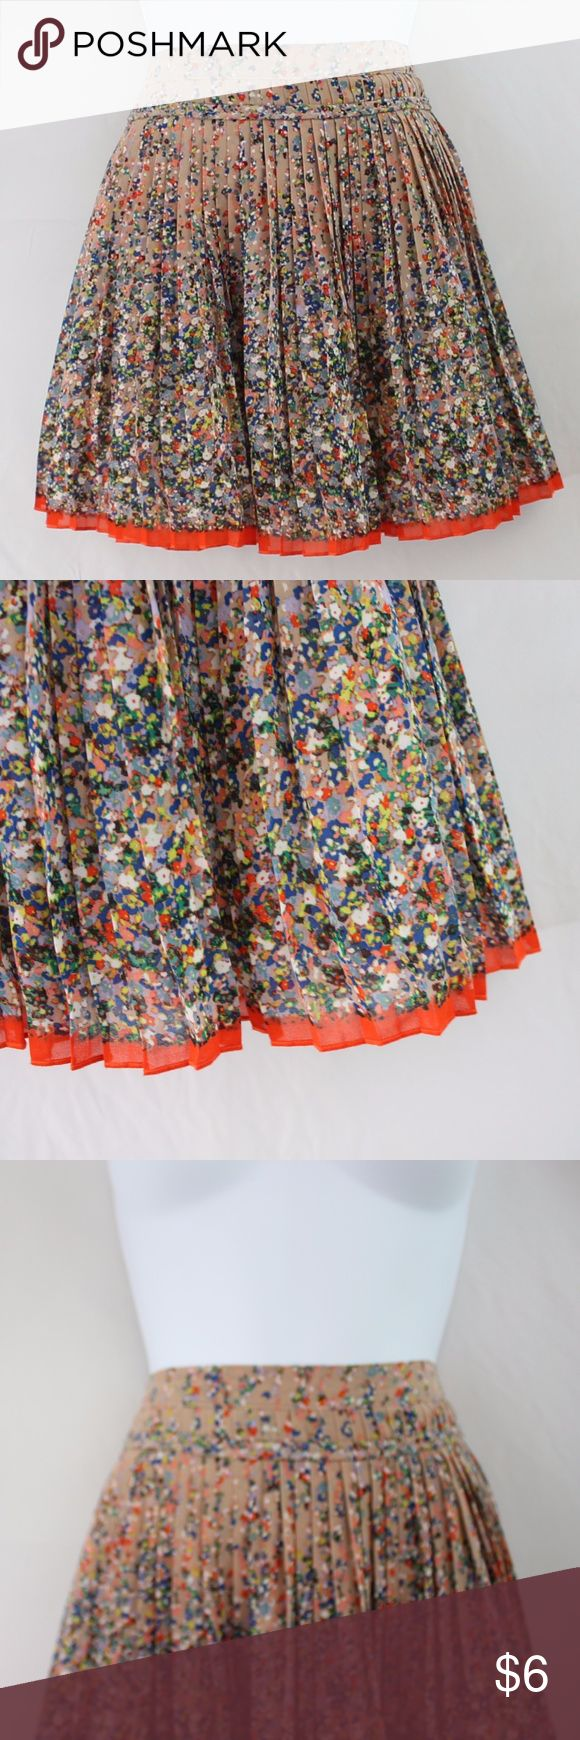 "SALE - American Eagle Outfitters Mini Skirt American Eagle Outfitters  Flouncy Mini Skirt with 1/2"" Pleating and Braid Band Detail Nude background with Multicolor Floral Design  Size 8 (See pictures for measurements) American Eagle Outfitters Skirts Mini"